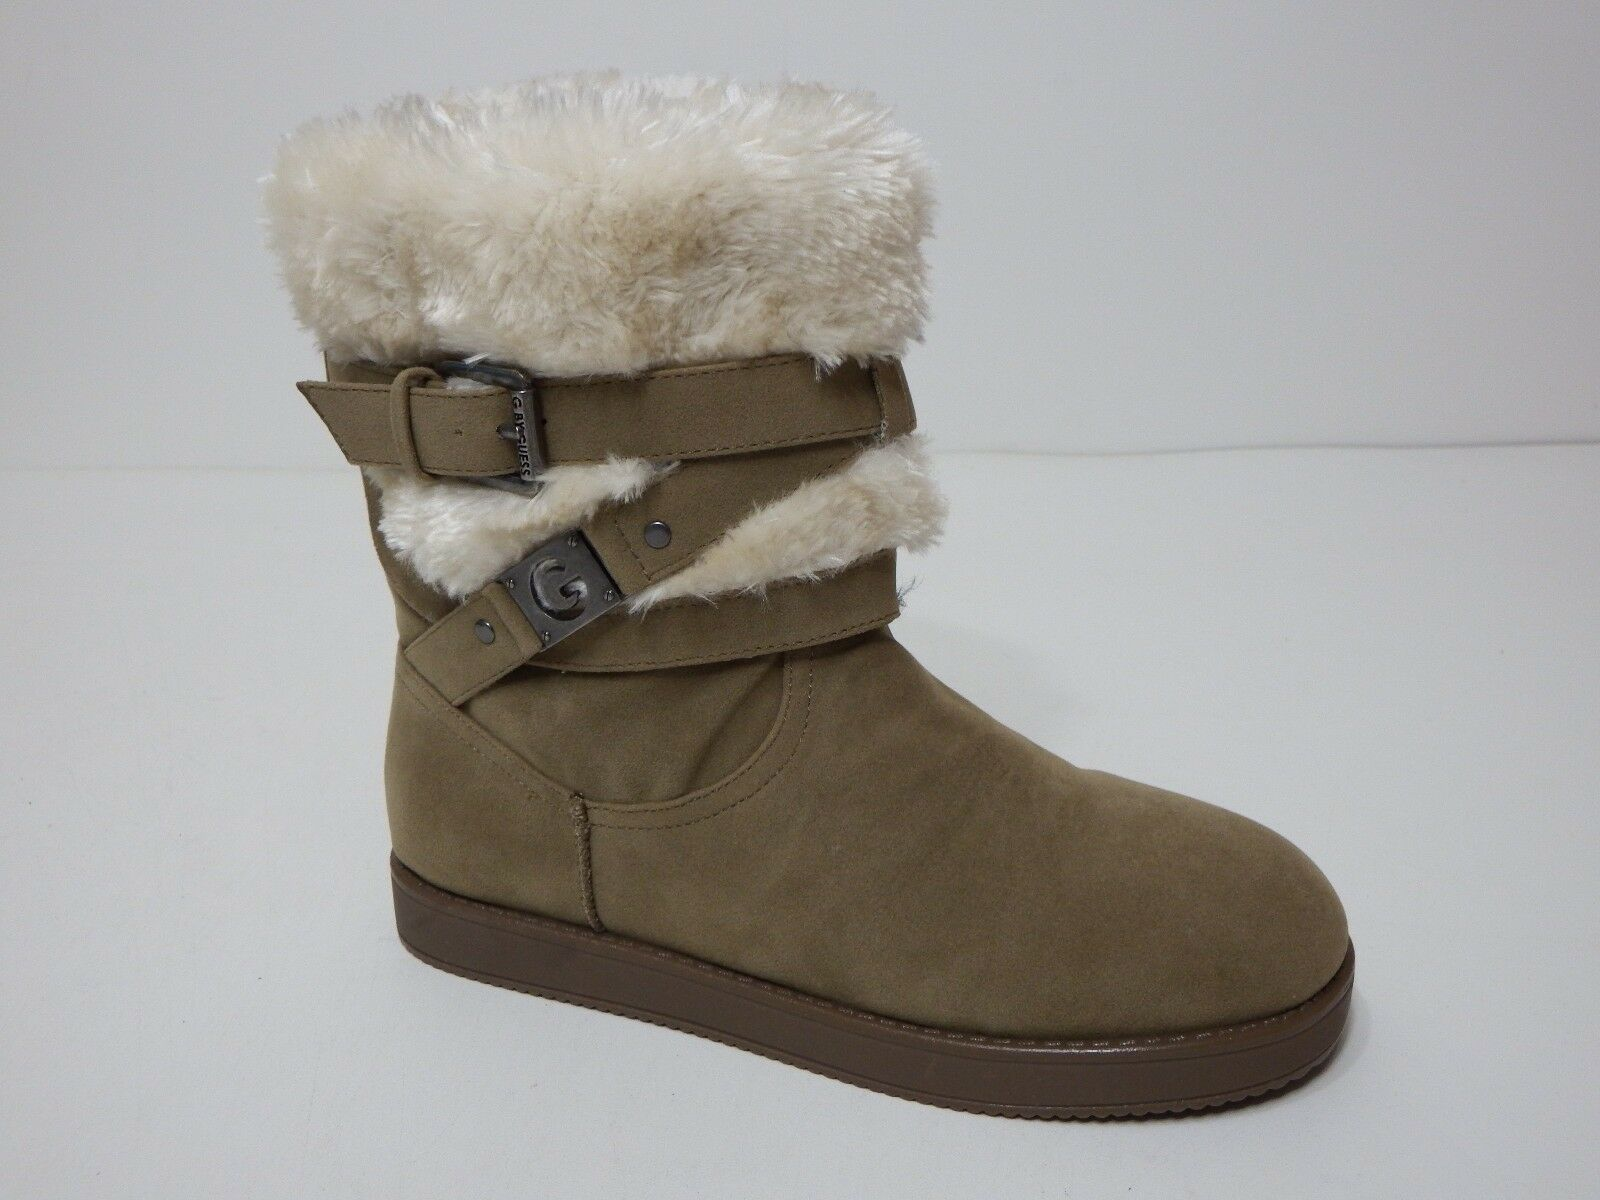 Guess boots womens  6 M shoes Alta slip taupe Multi Fabric faux fur buckle